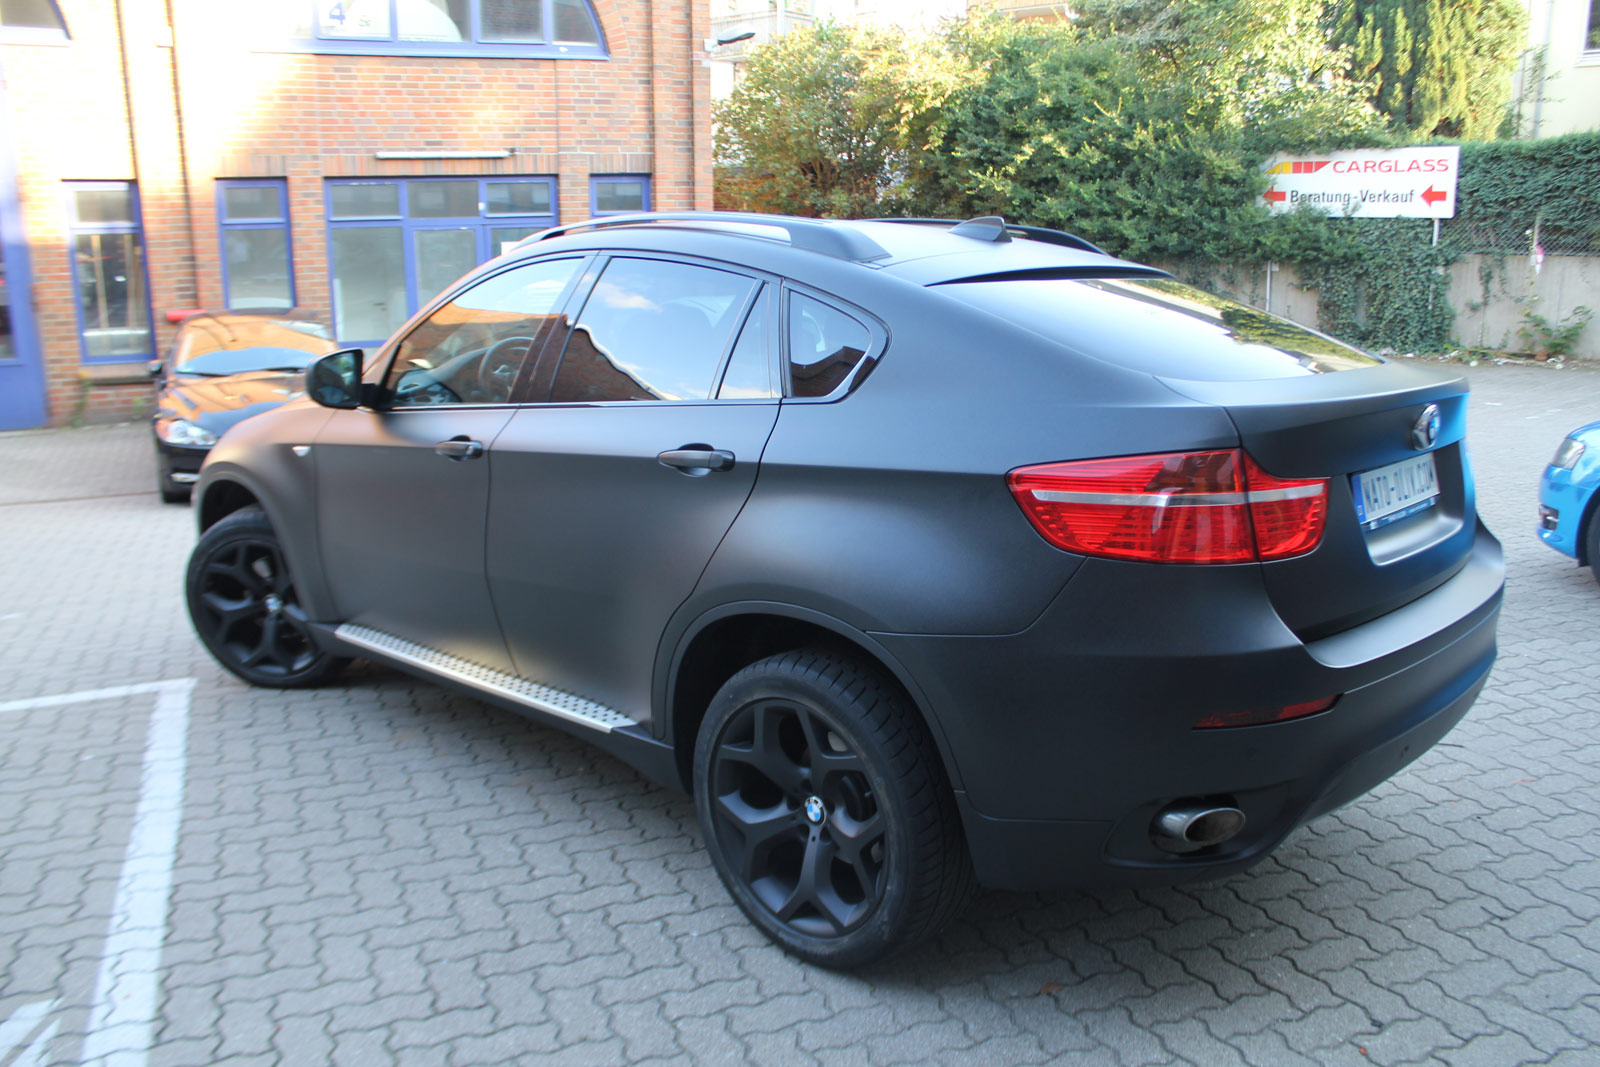 bmw x6 in schwarz metallic matt nato. Black Bedroom Furniture Sets. Home Design Ideas